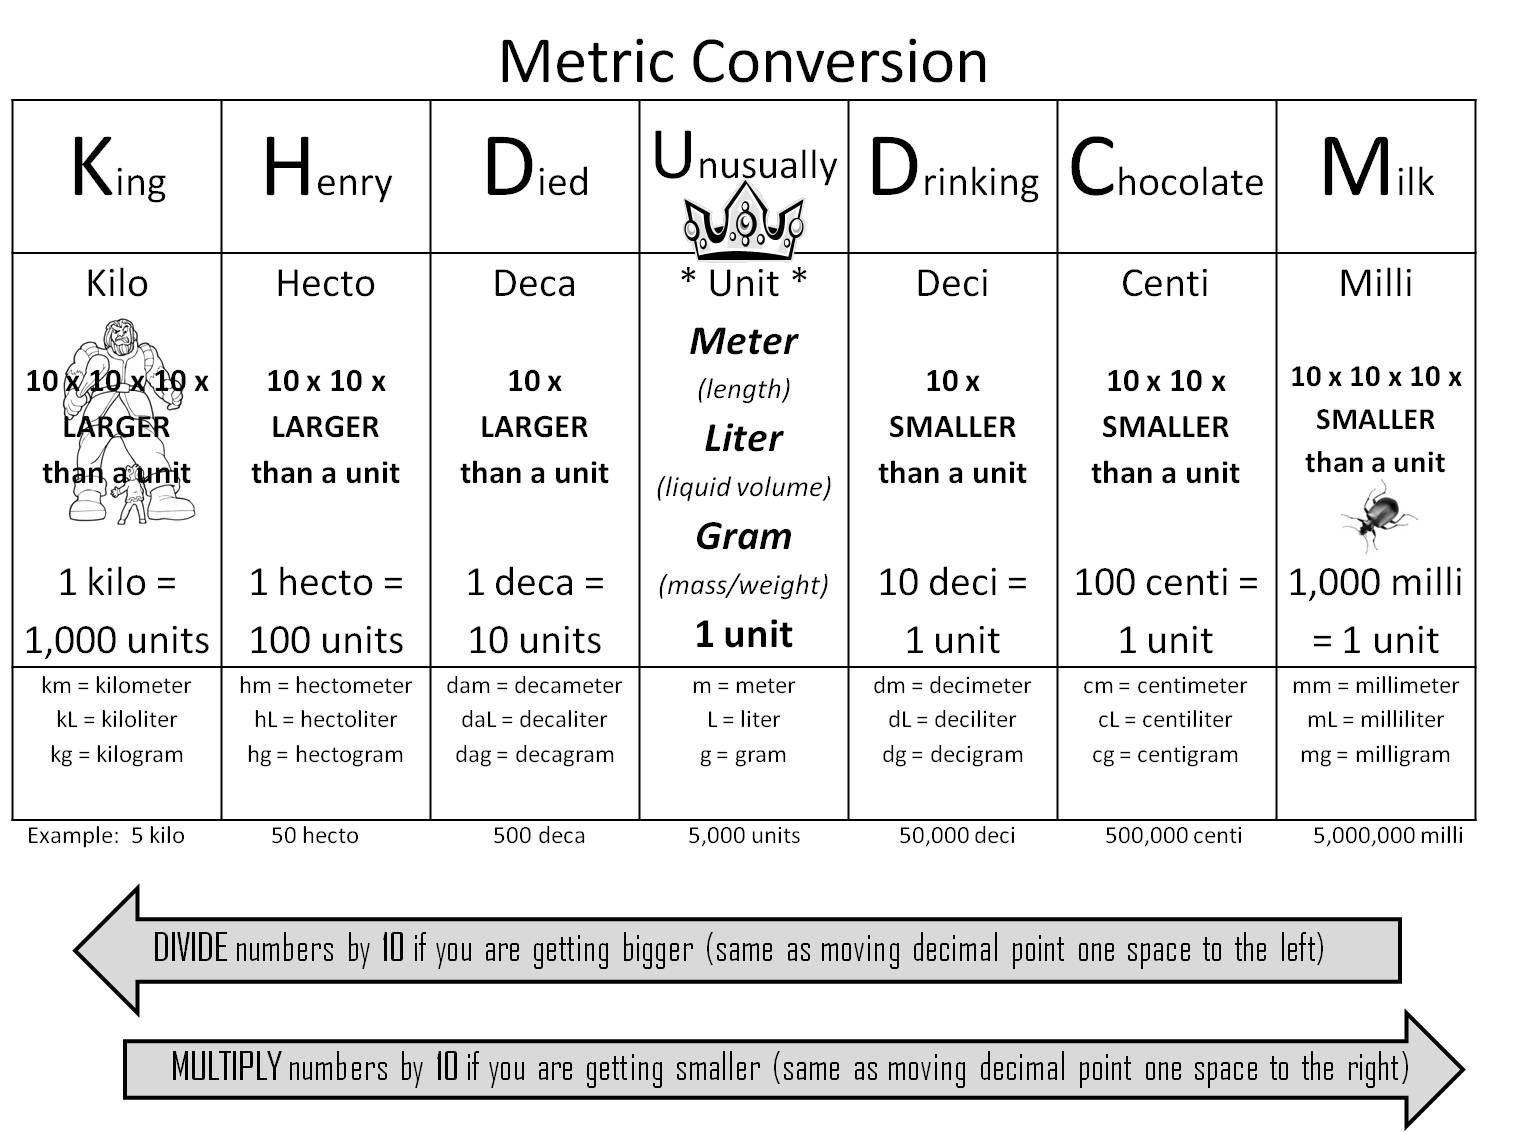 Metric Conversion Worksheets 5th Grade Strong Armor Math Metric Conversion Trick